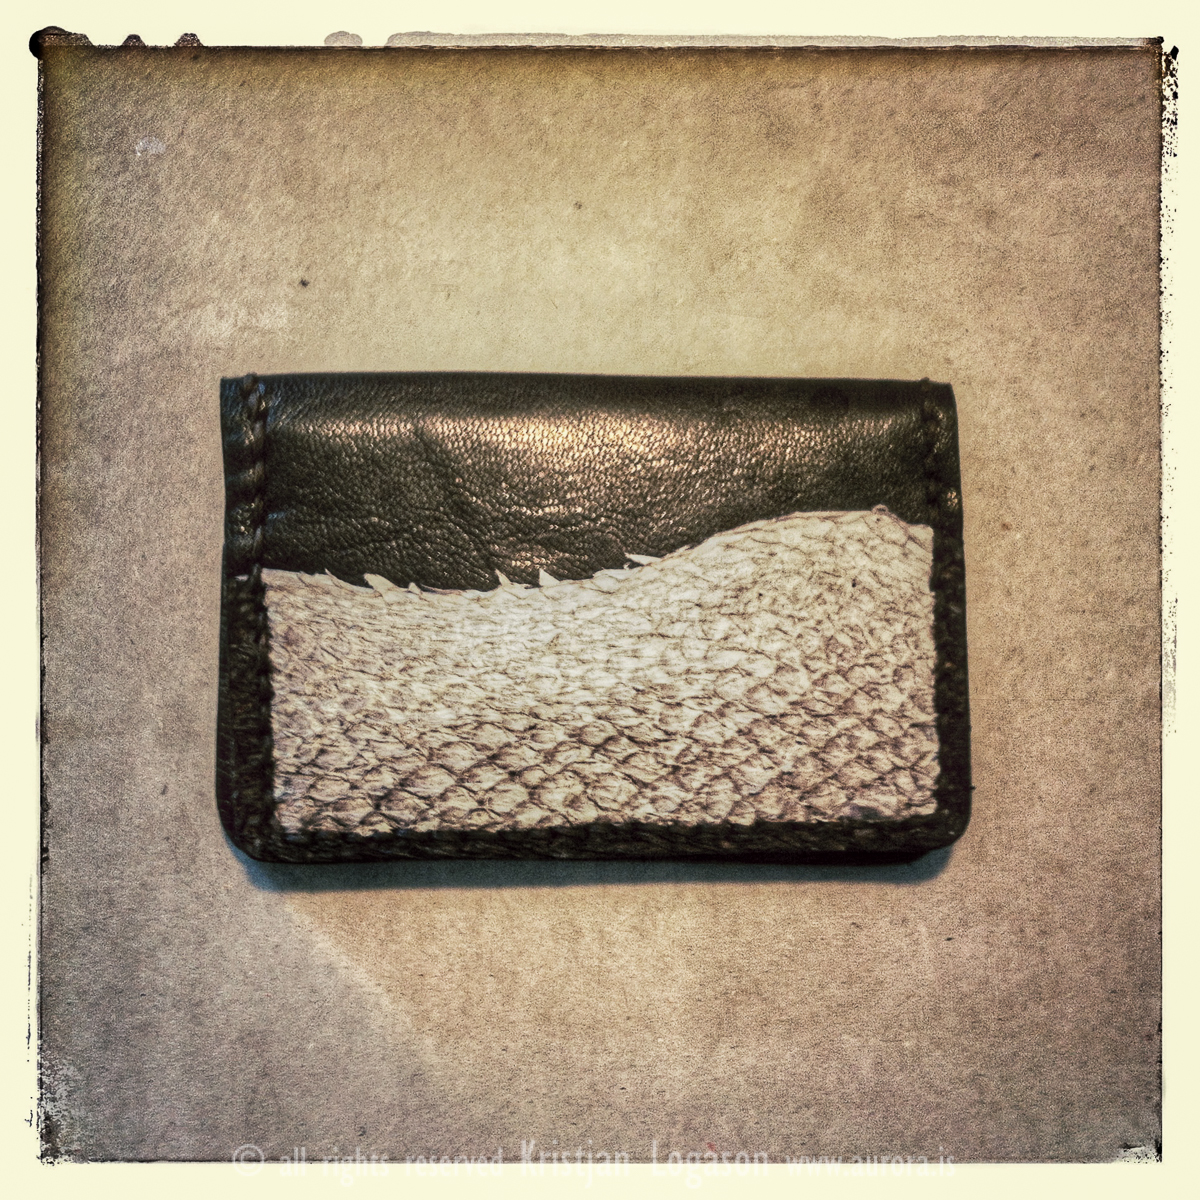 5 ways for leather worker to improve product photography with iPhone